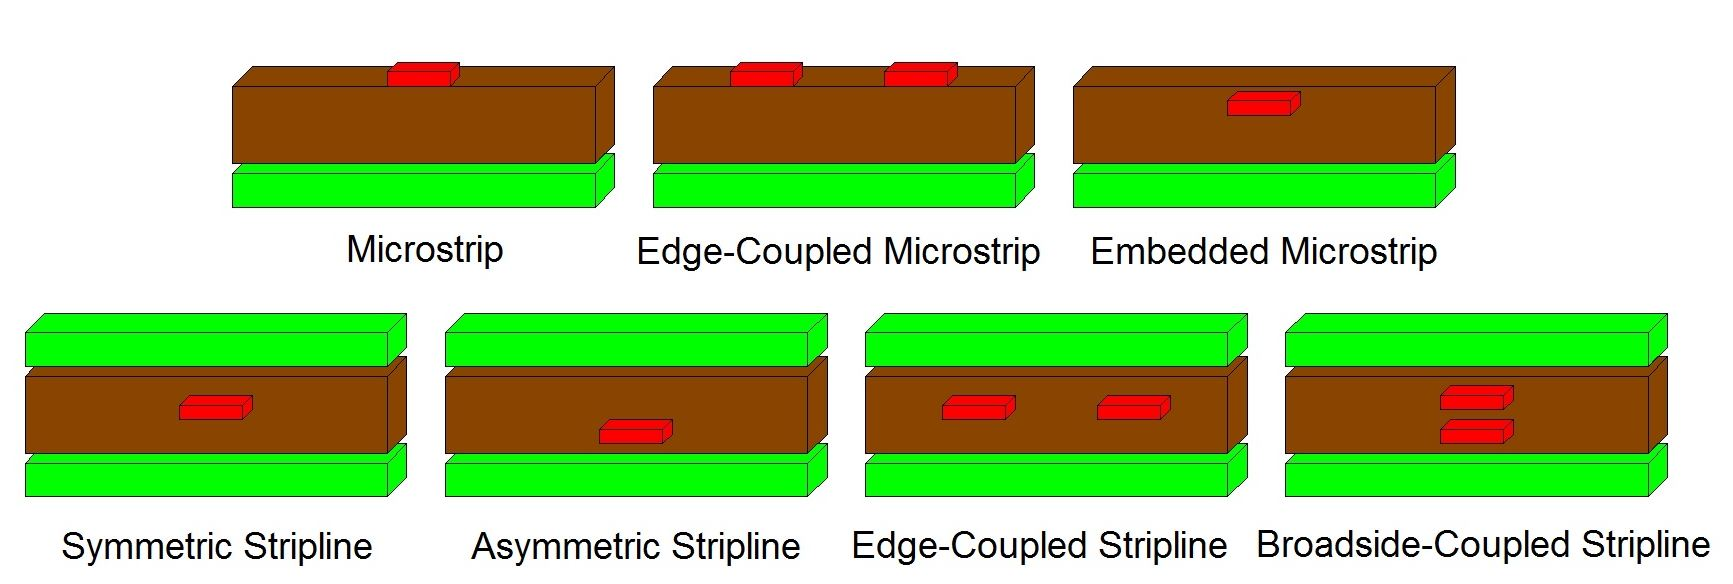 Examples of different microstrip and stripline PCB layer stackup configurations